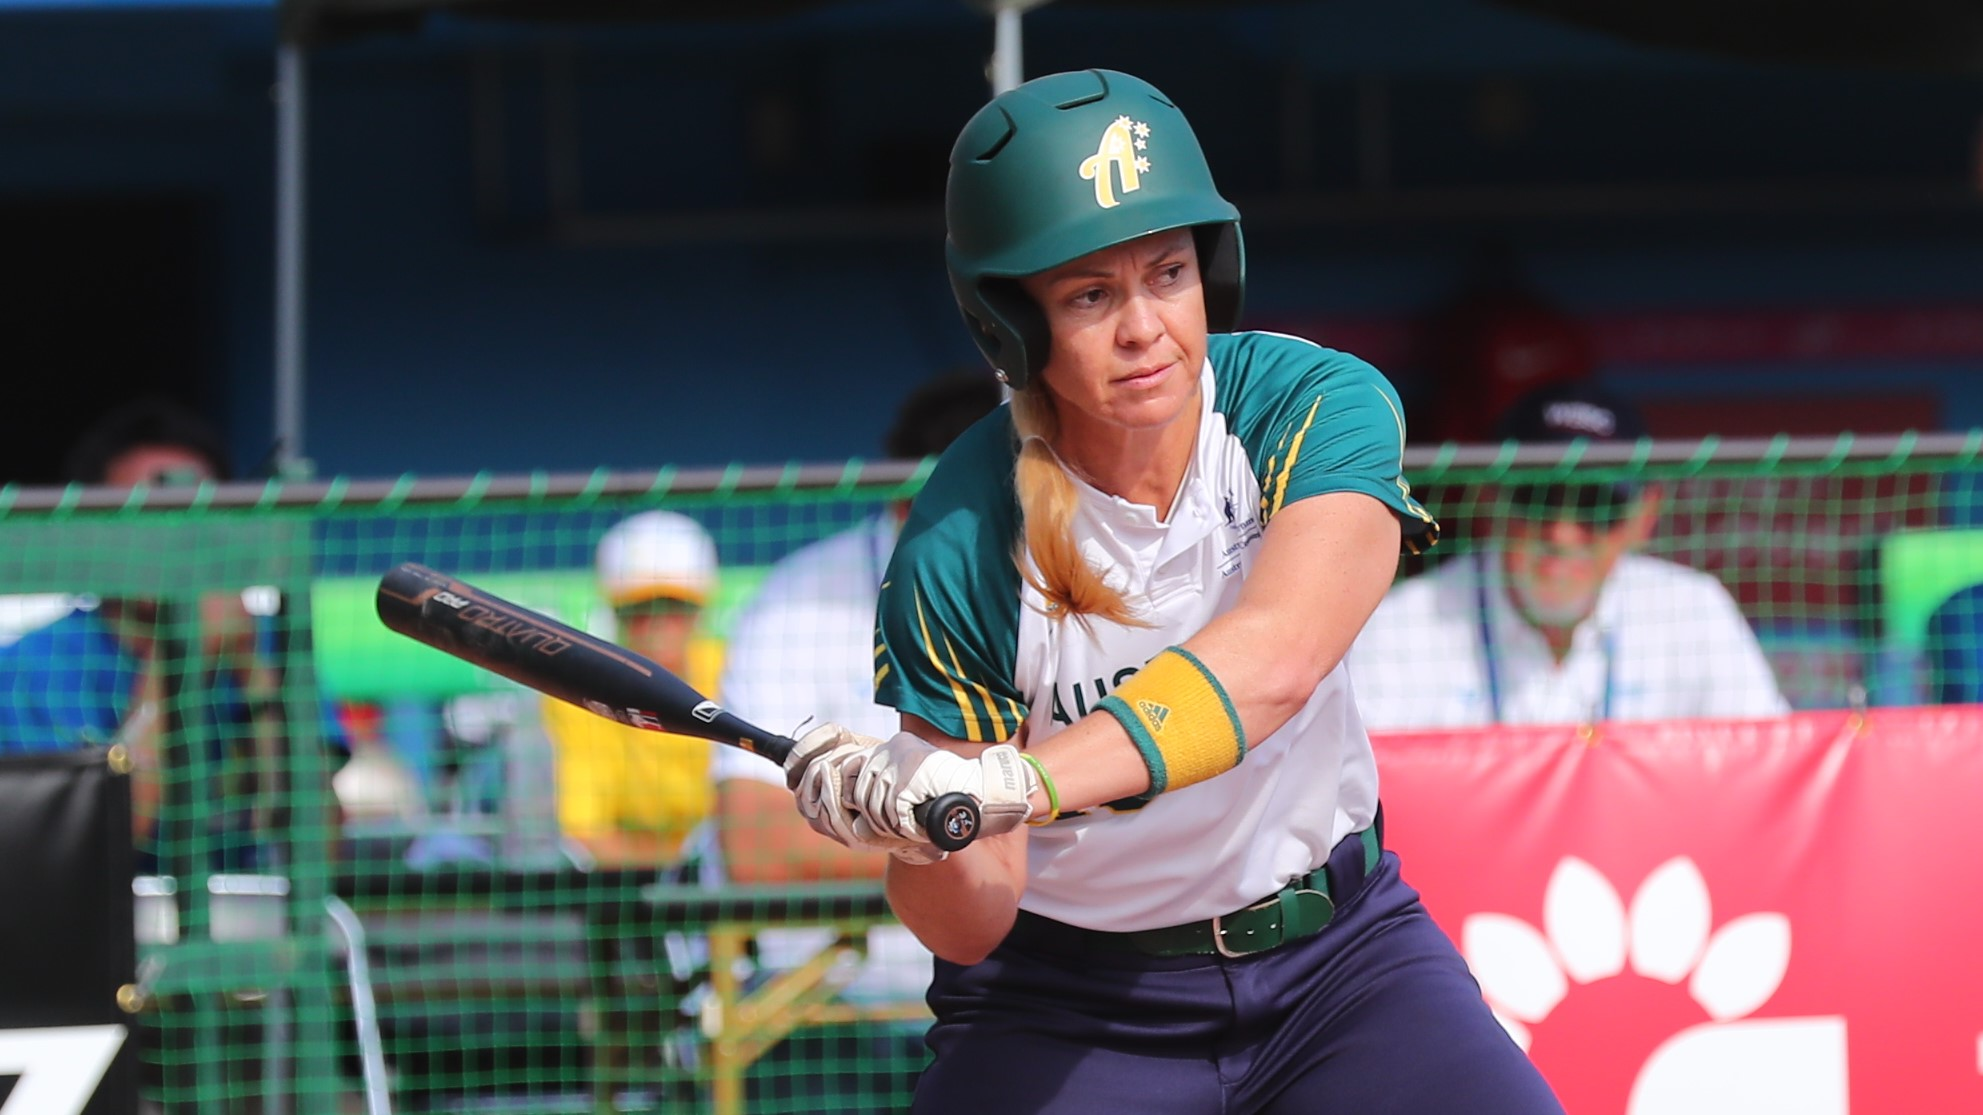 The first hit for Australia was a home run by Stacey Porter that tied the game in the fourth